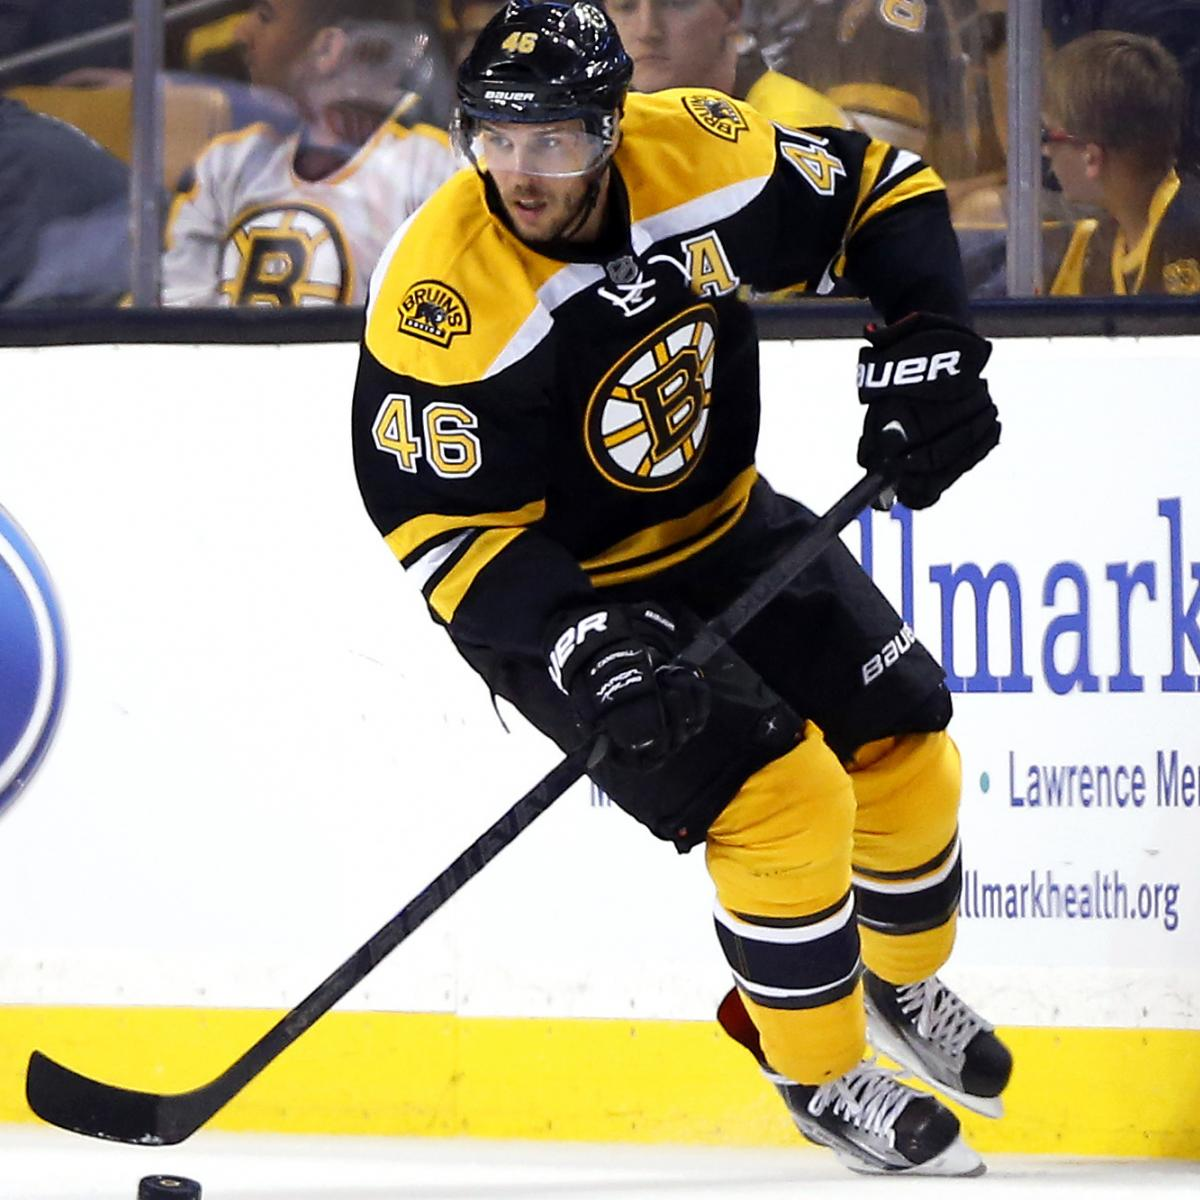 David Krejci Injury: Updates On Bruins Star's Recovery